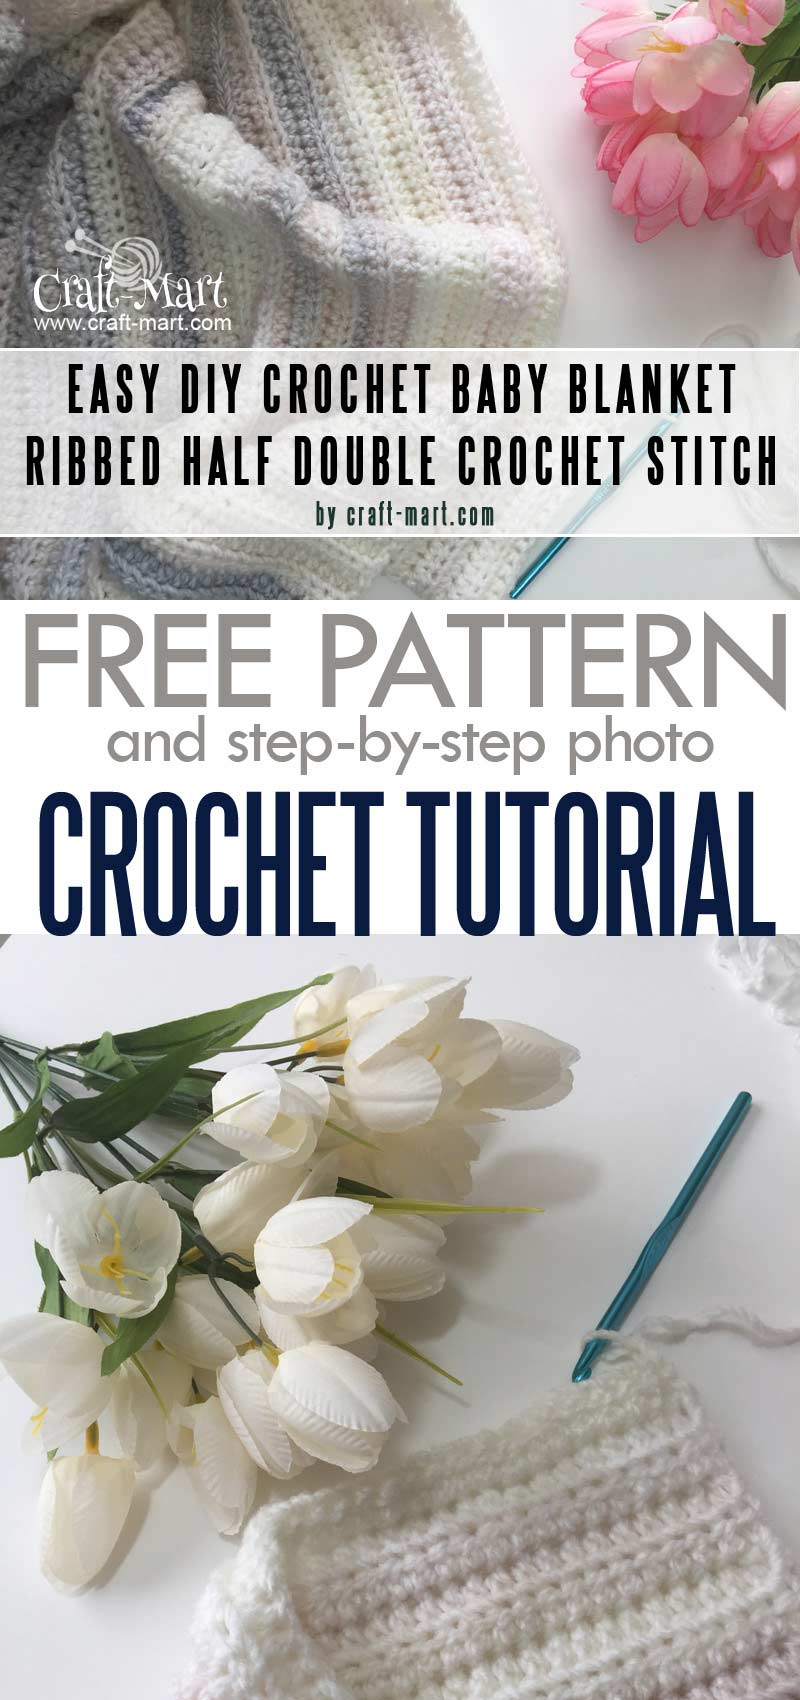 crochet baby blanket patterns using Ribbed Half Double Crochet stitch